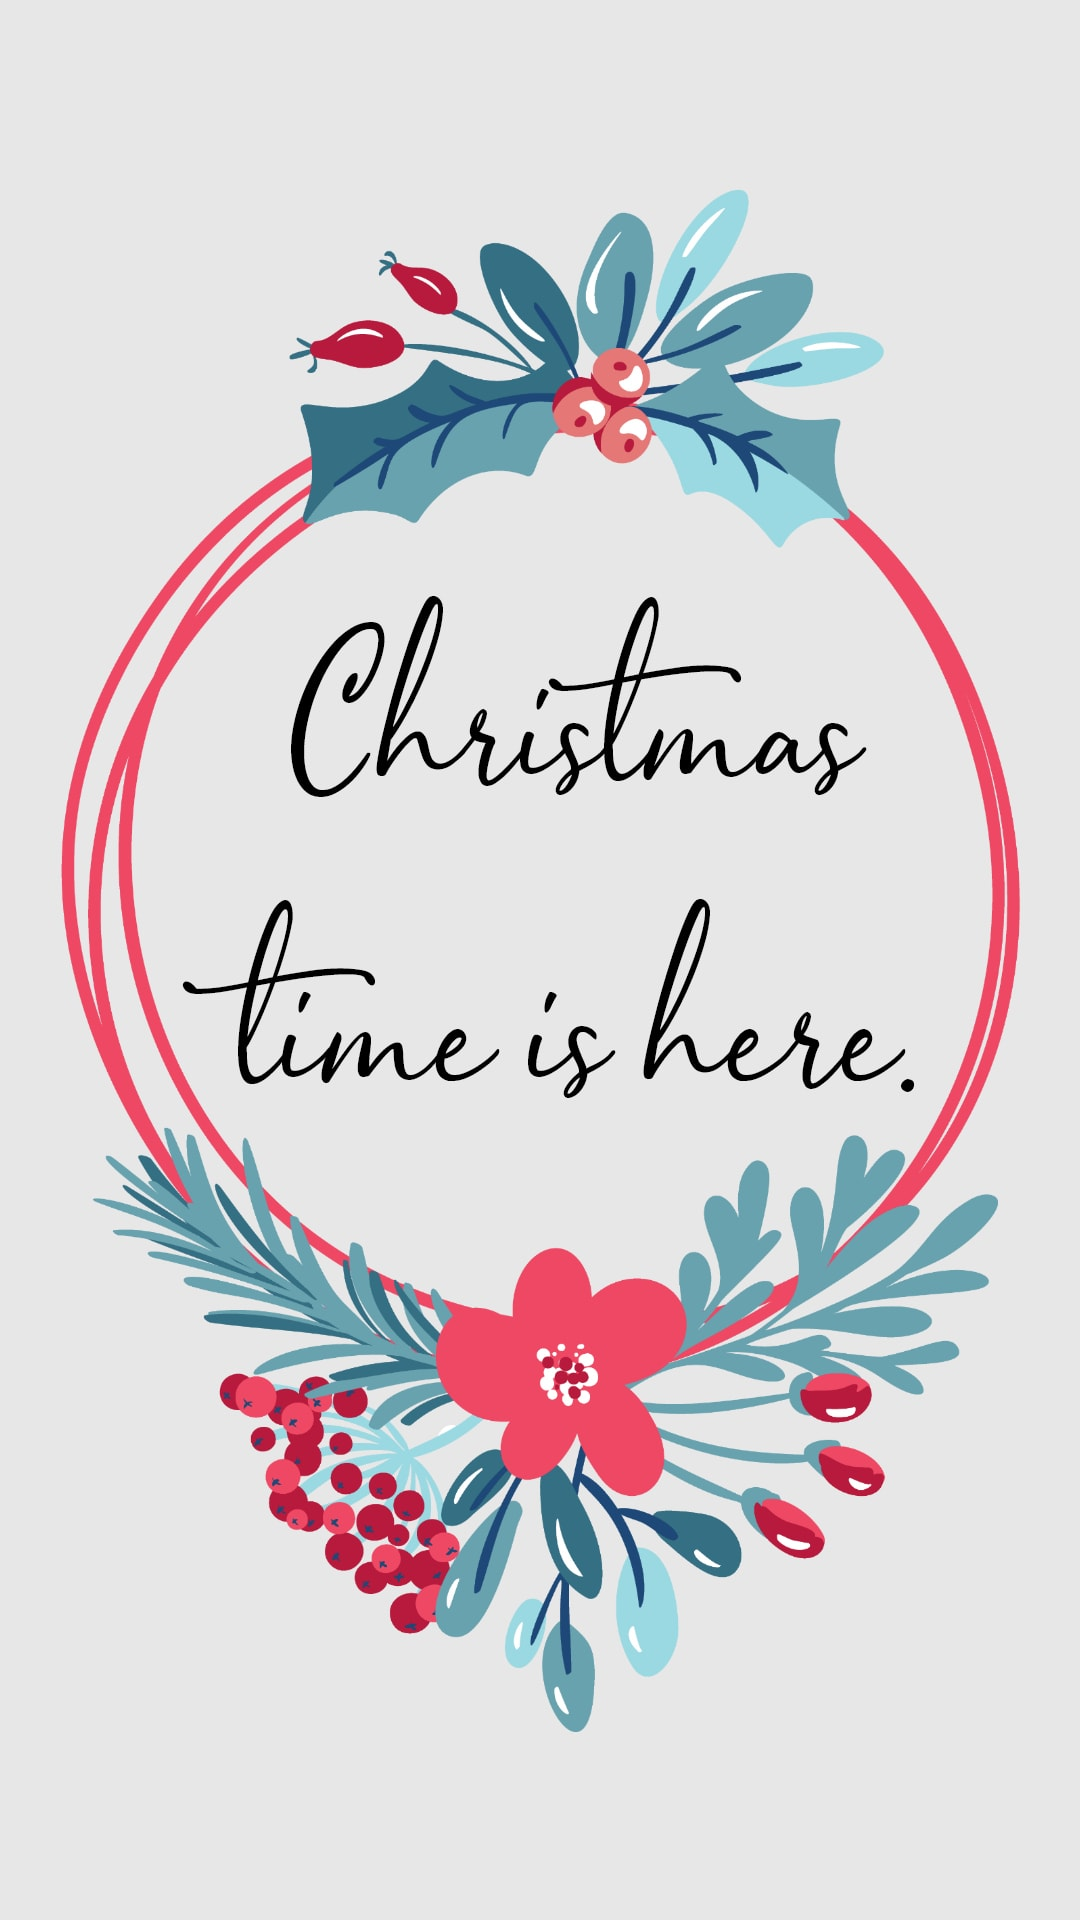 Christmas Phone Wallpapers and Phone Backgrounds to Download